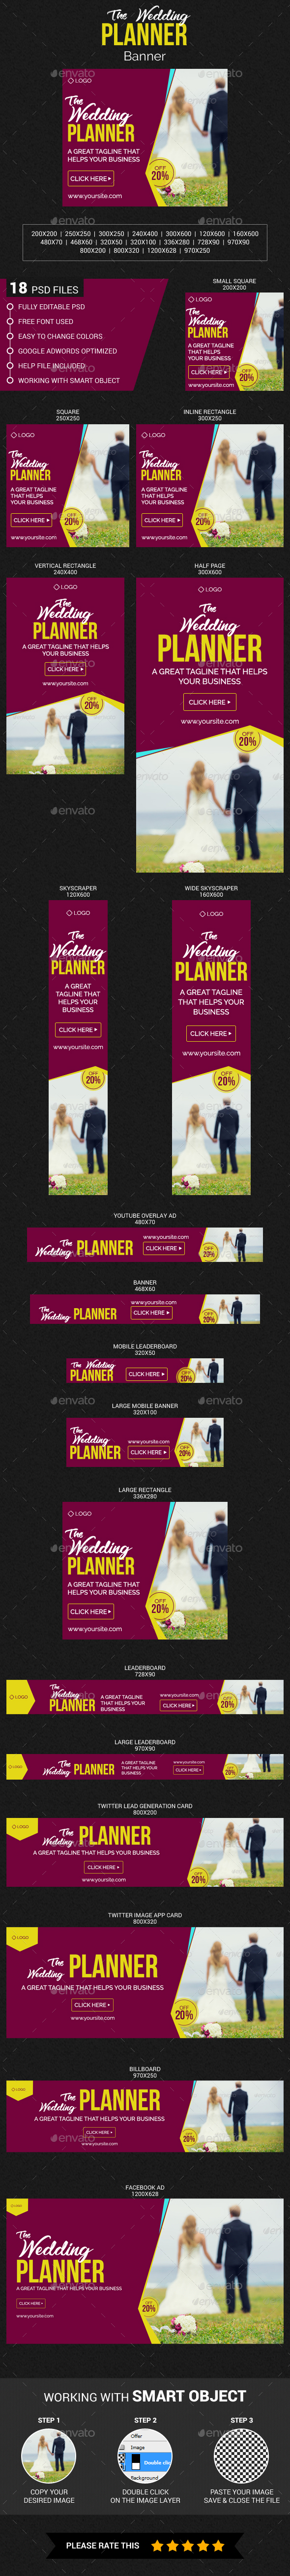 Wedding Planner - Banners & Ads Web Elements